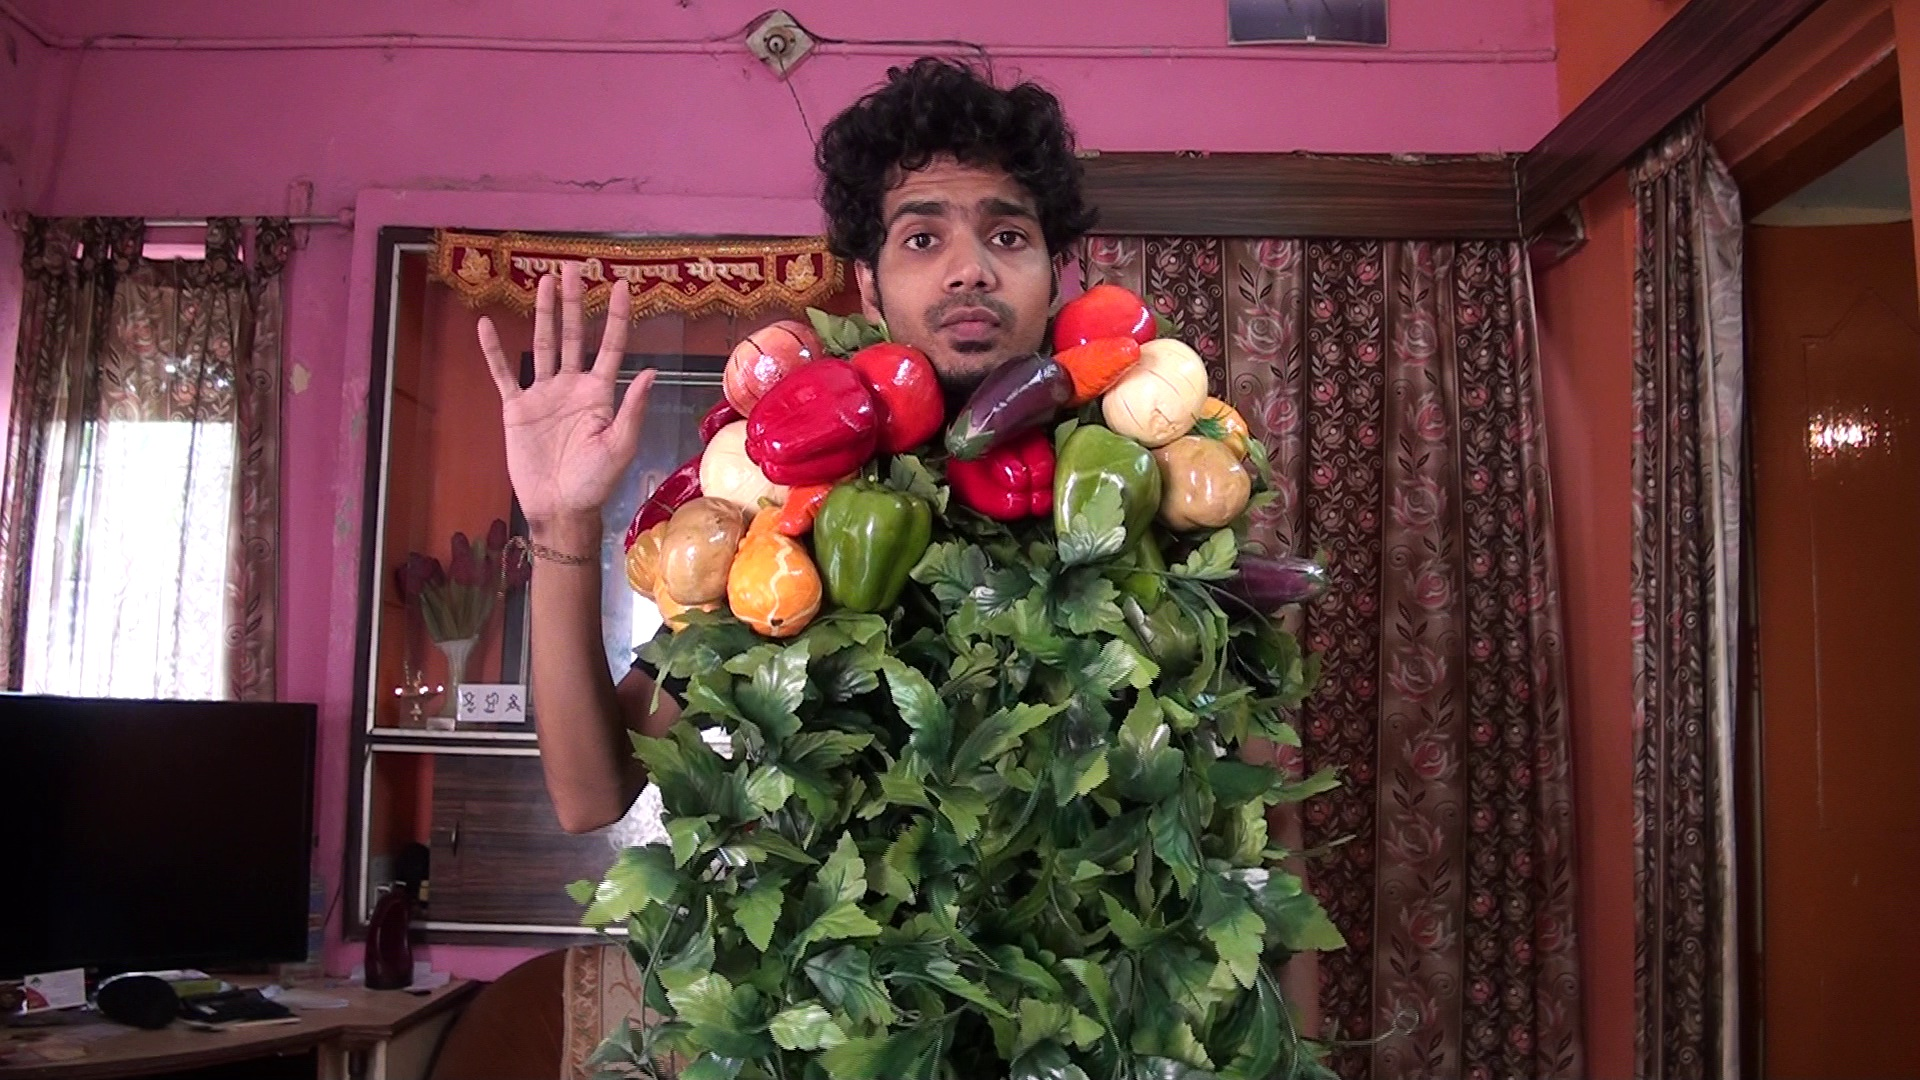 say whatever you want with my vegetable man costume